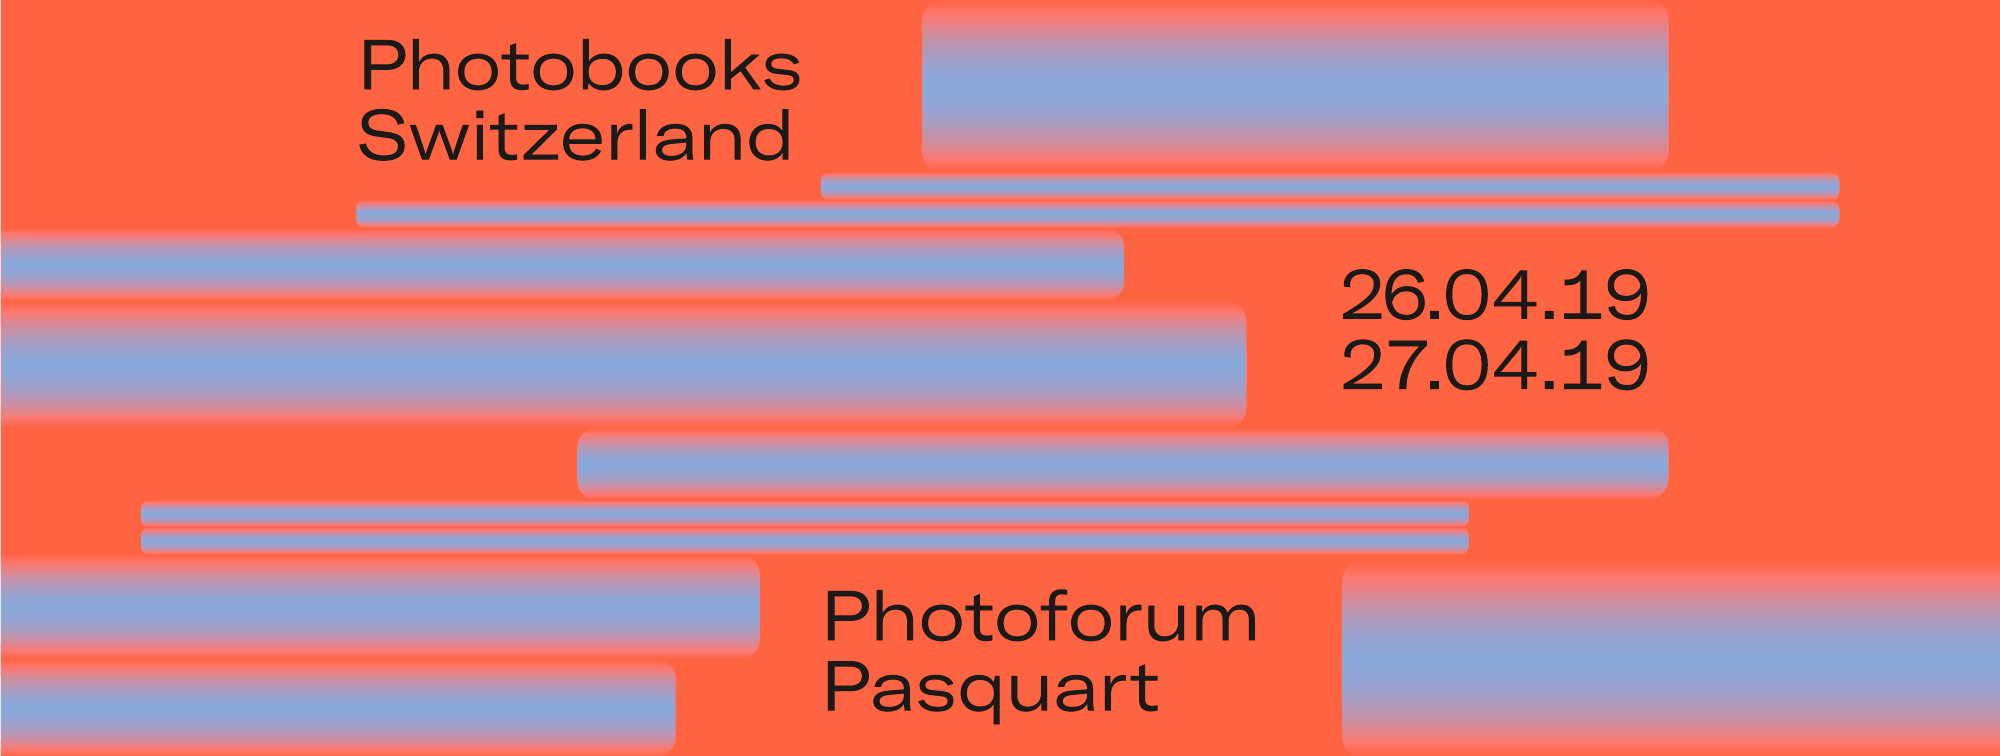 Collective Le Salon is happy to have been invited at the first edition of  Photobooks Switzerland  , which will take place at Photoforum Bienne on the 26th & 27th of April !  Book fair, conferences, talks, projections, portfolio reviews and more programmed…   >  https://www.facebook.com/photobooksswitzerland/   >  https://www.photoforumpasquart.ch/fr/event/photobooks-switzerland/